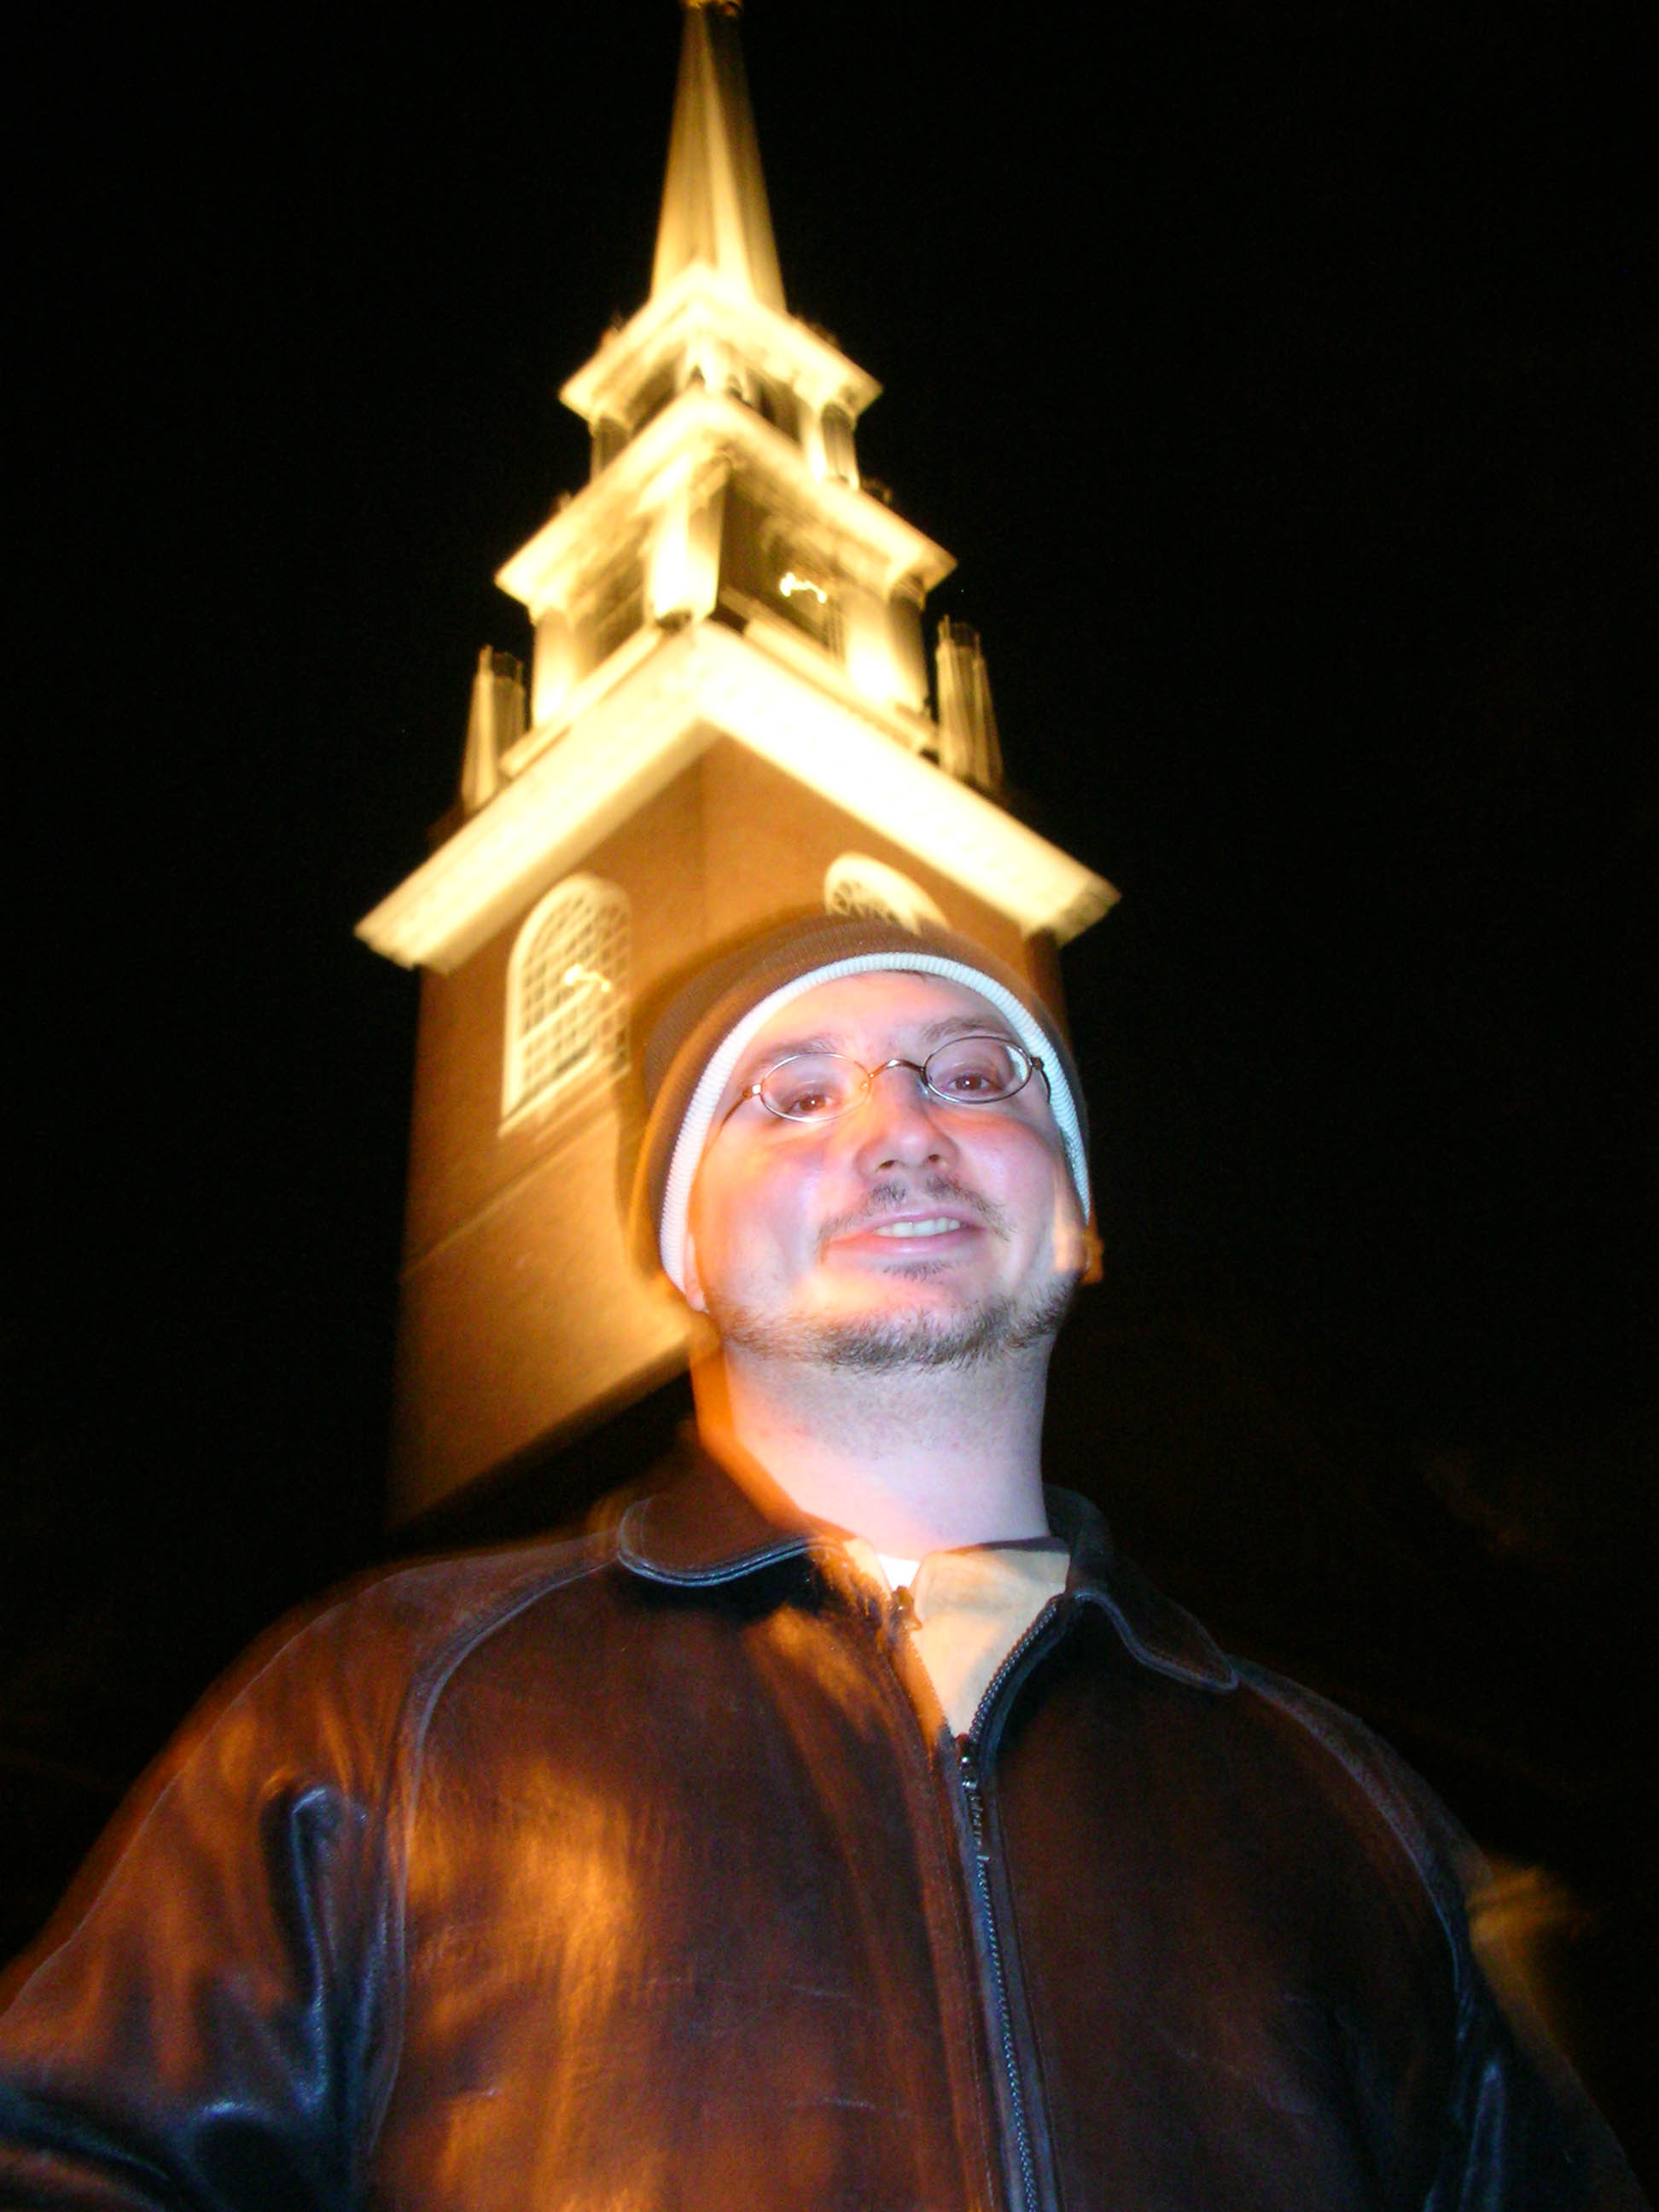 My friend, Dave Feinberg, posing in front of Harvard's Memorial Church.